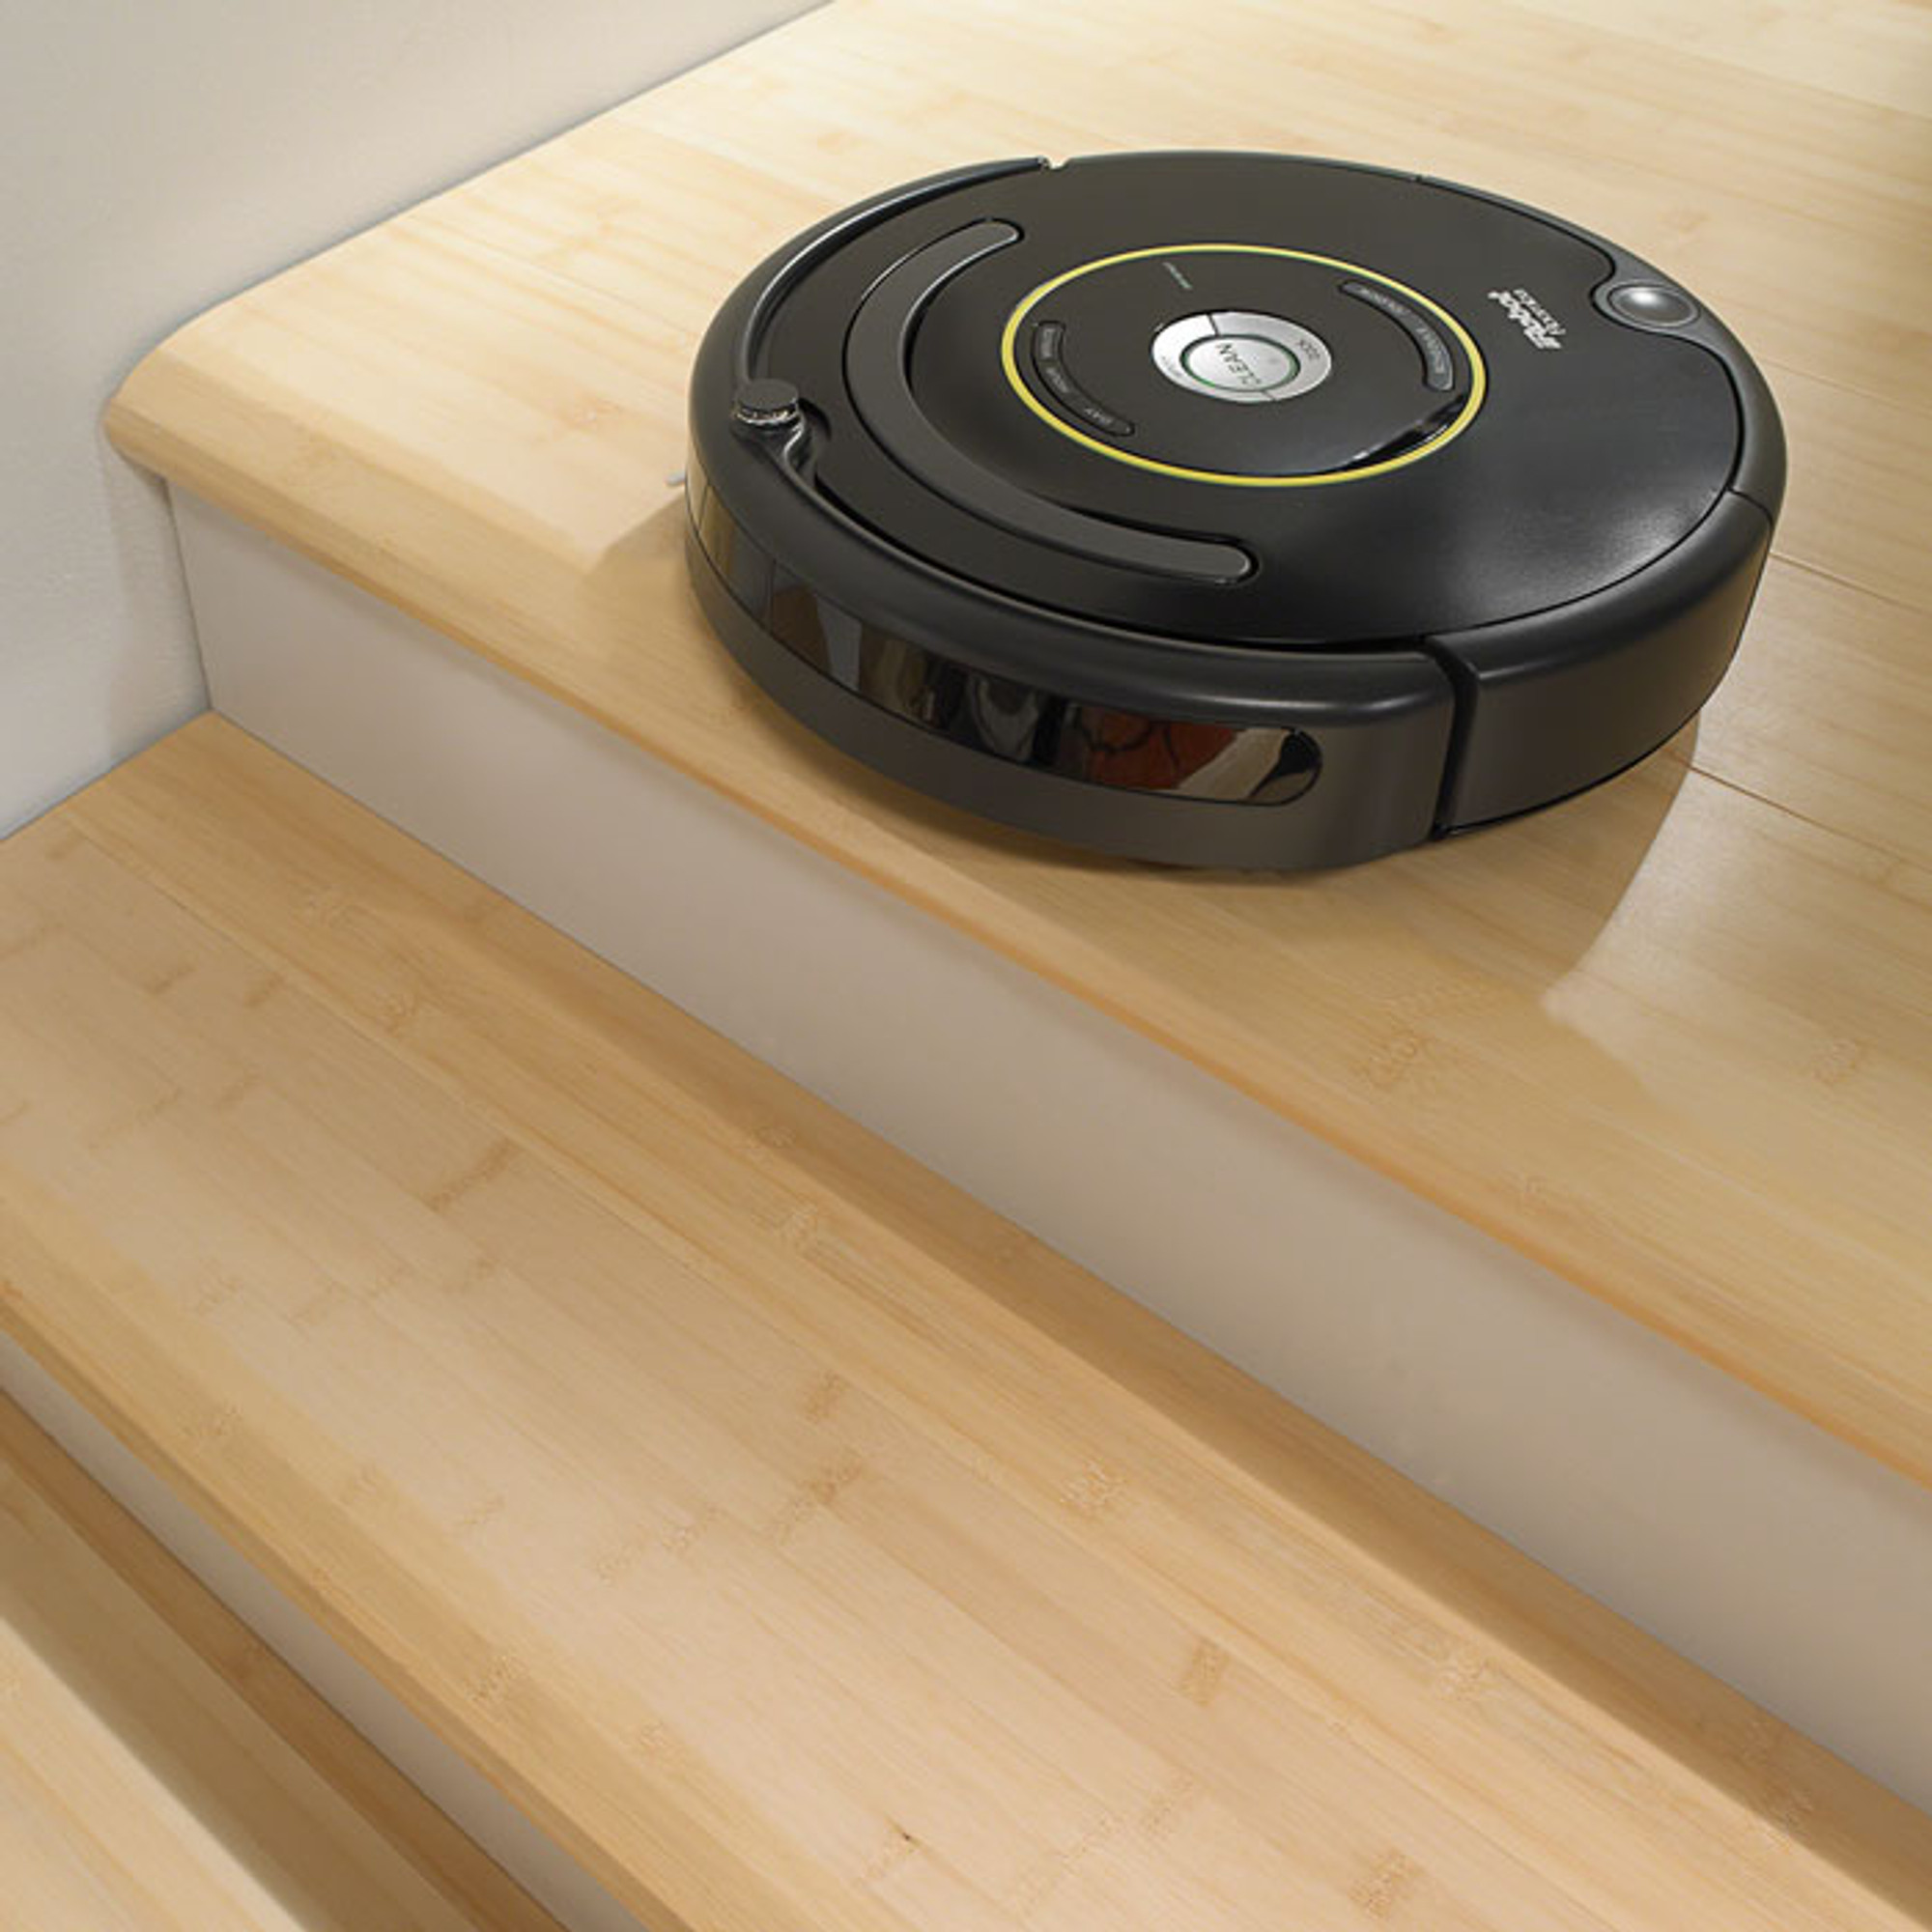 Buy Roomba 650 Robot Vacuum Cleaner From Canada At